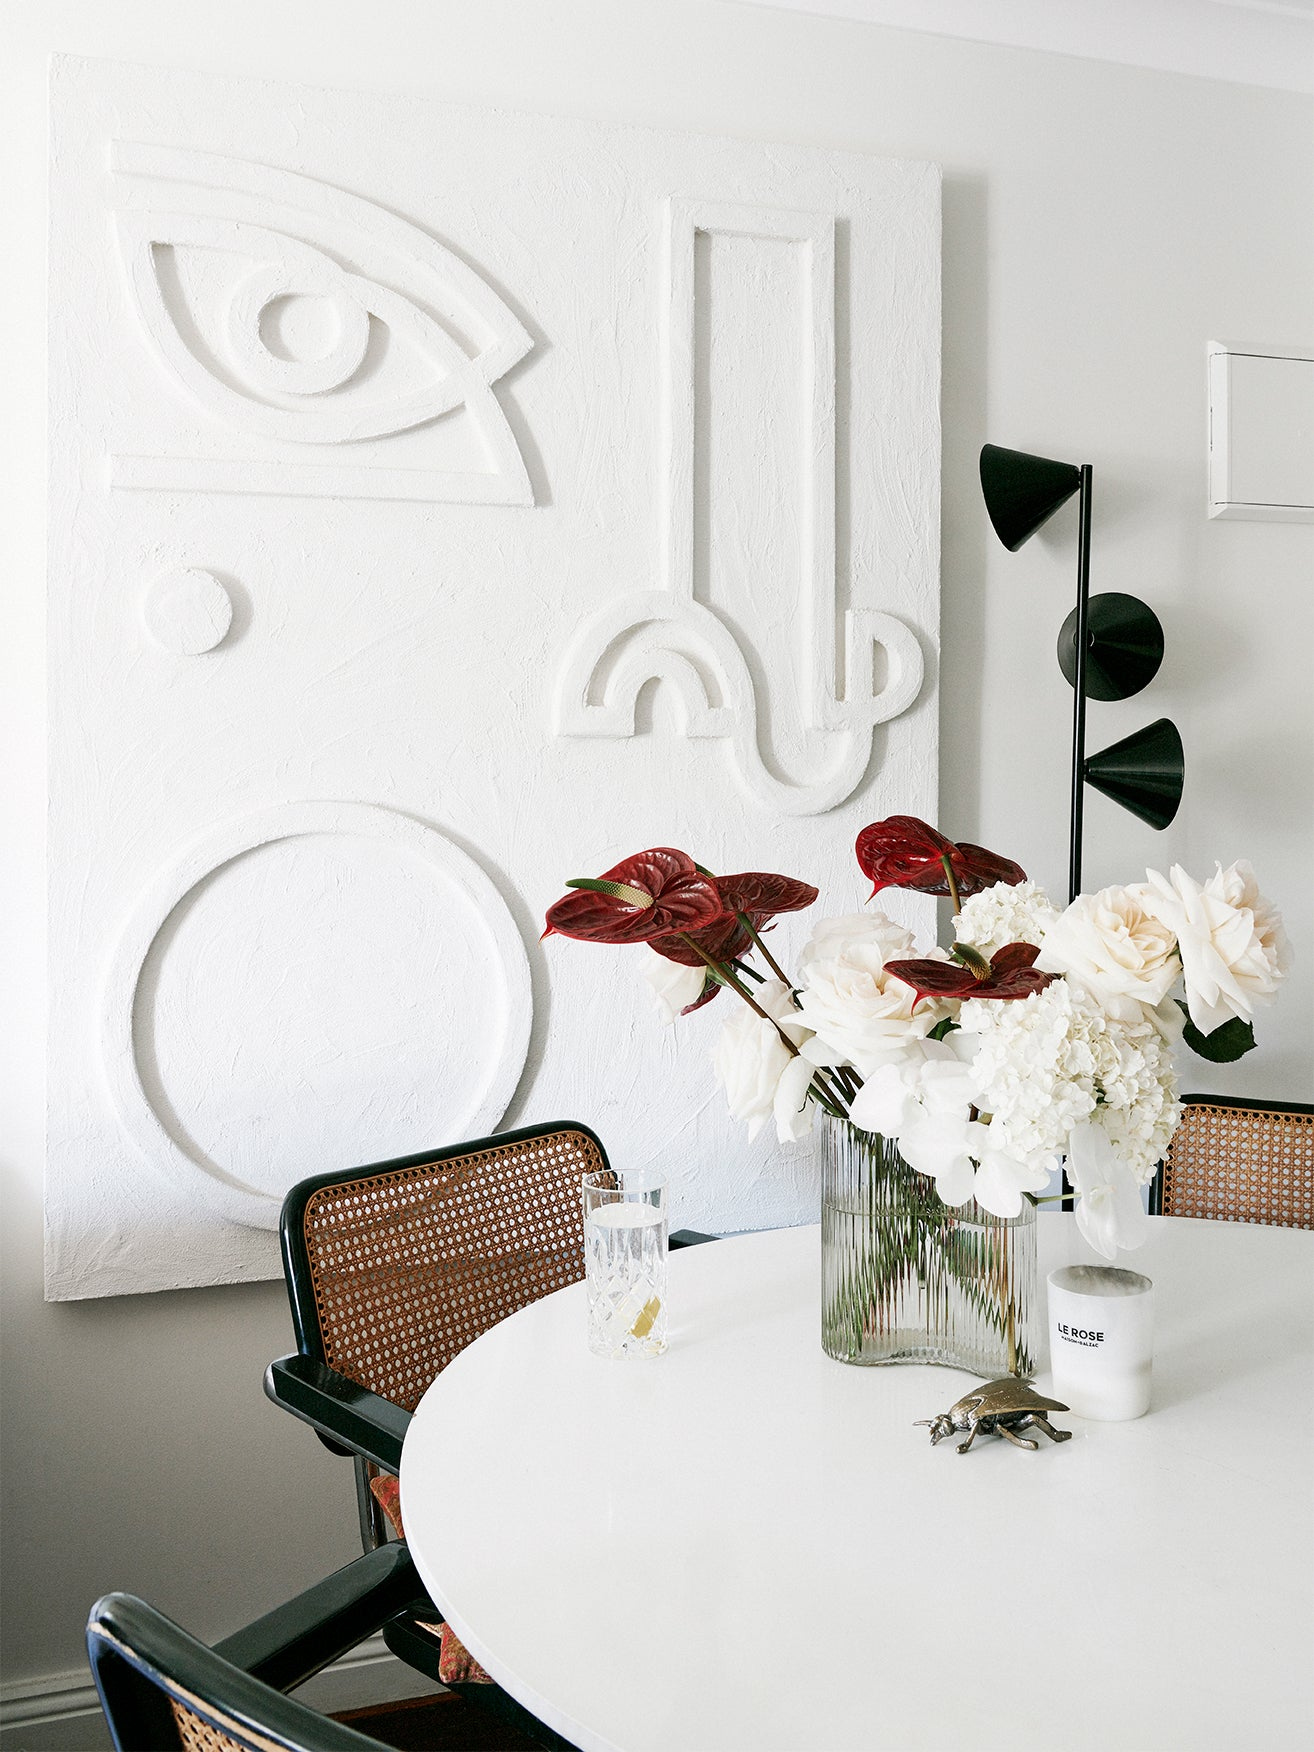 White coffee table with white artwork on walls.